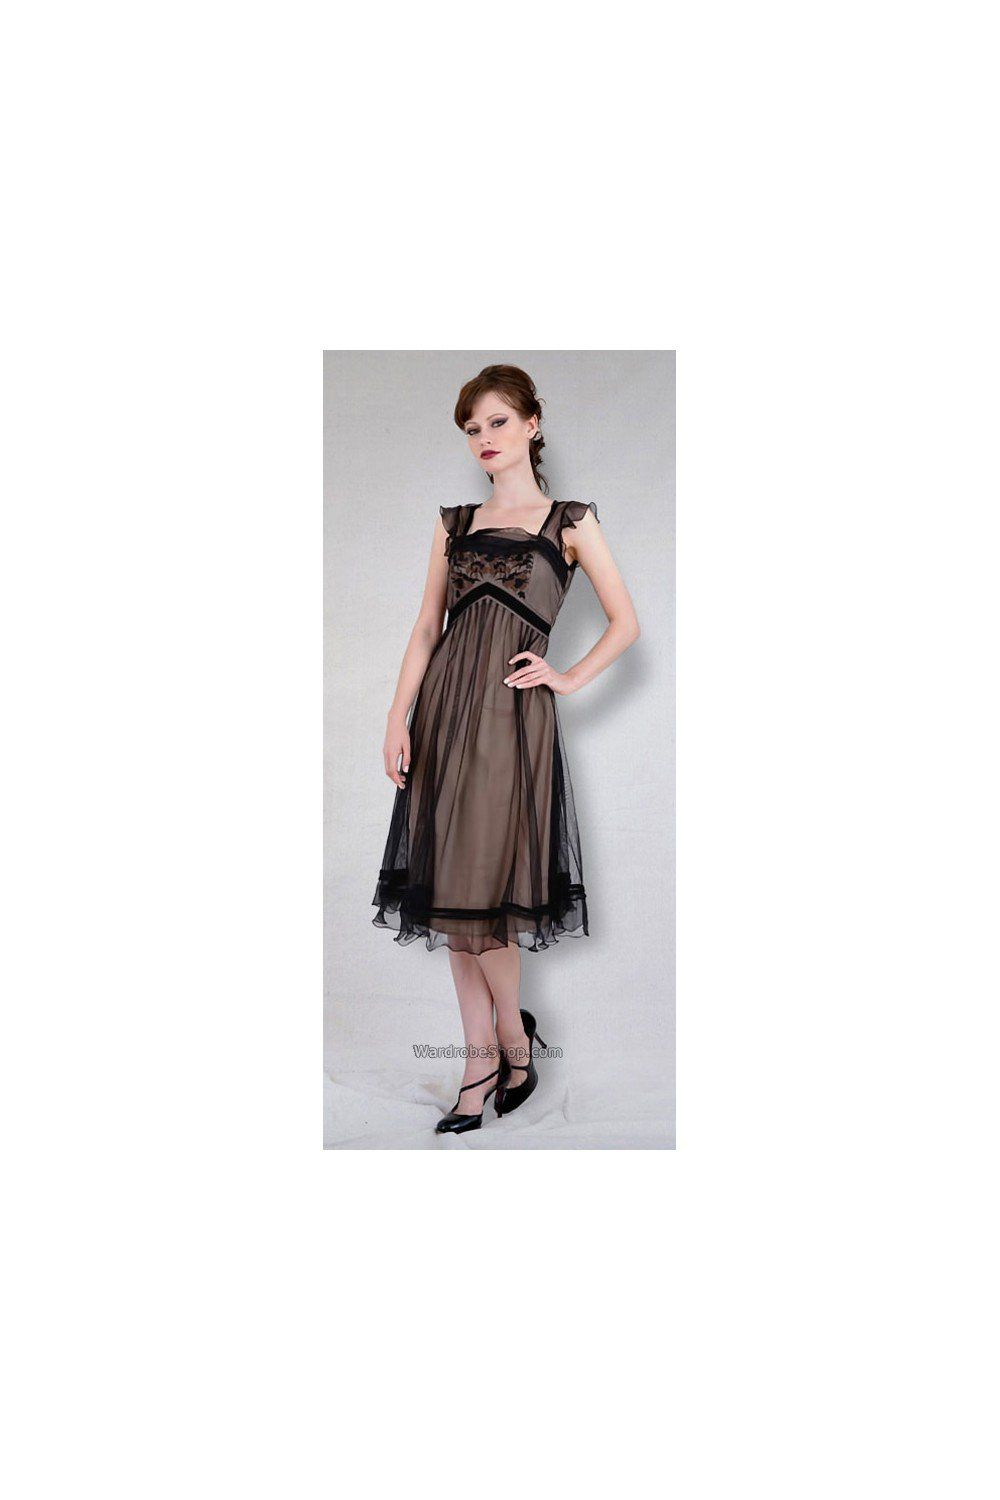 Vintage titanic tea party dress in rosegold by nataya sold out